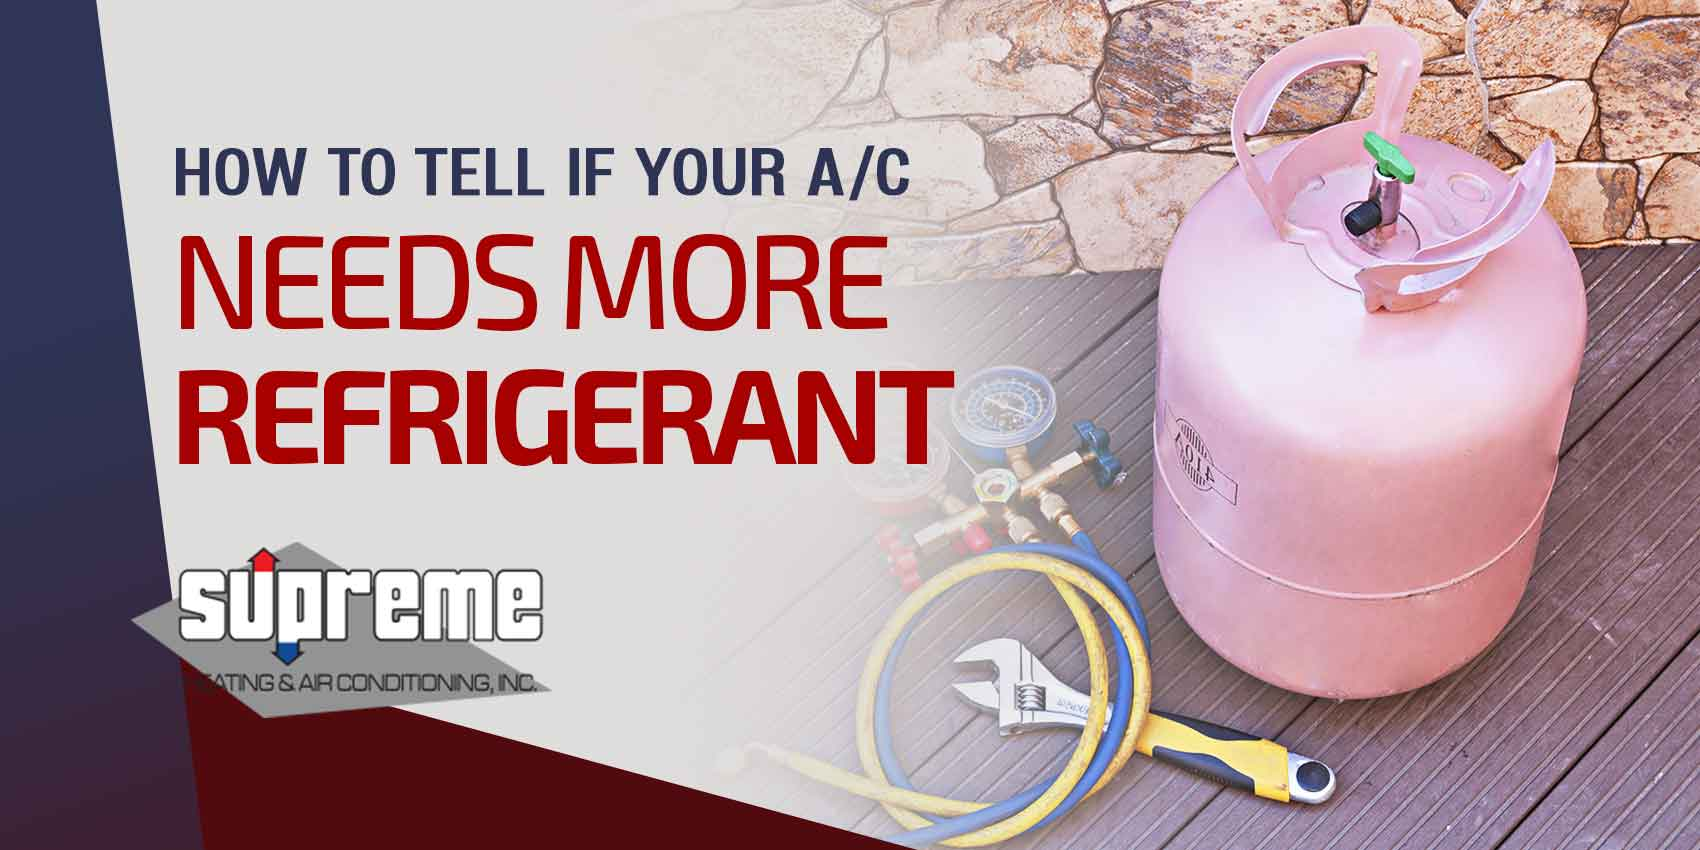 How To Tell If Your A/C Needs More Refrigerant